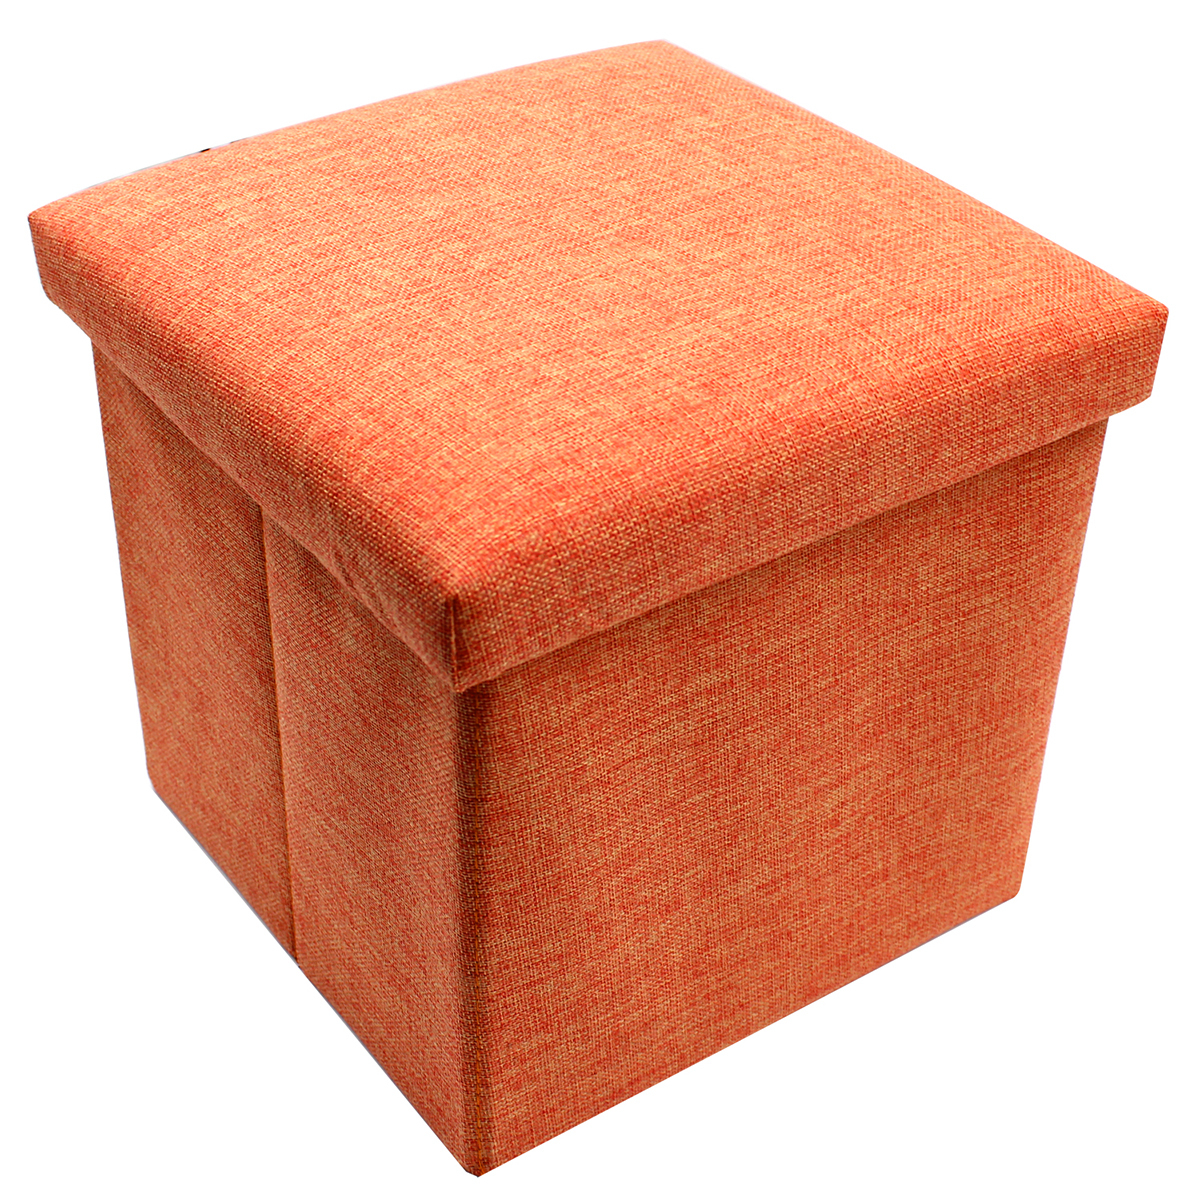 wallmark fabric ottoman storage box chairs (orange)  lazada ph -